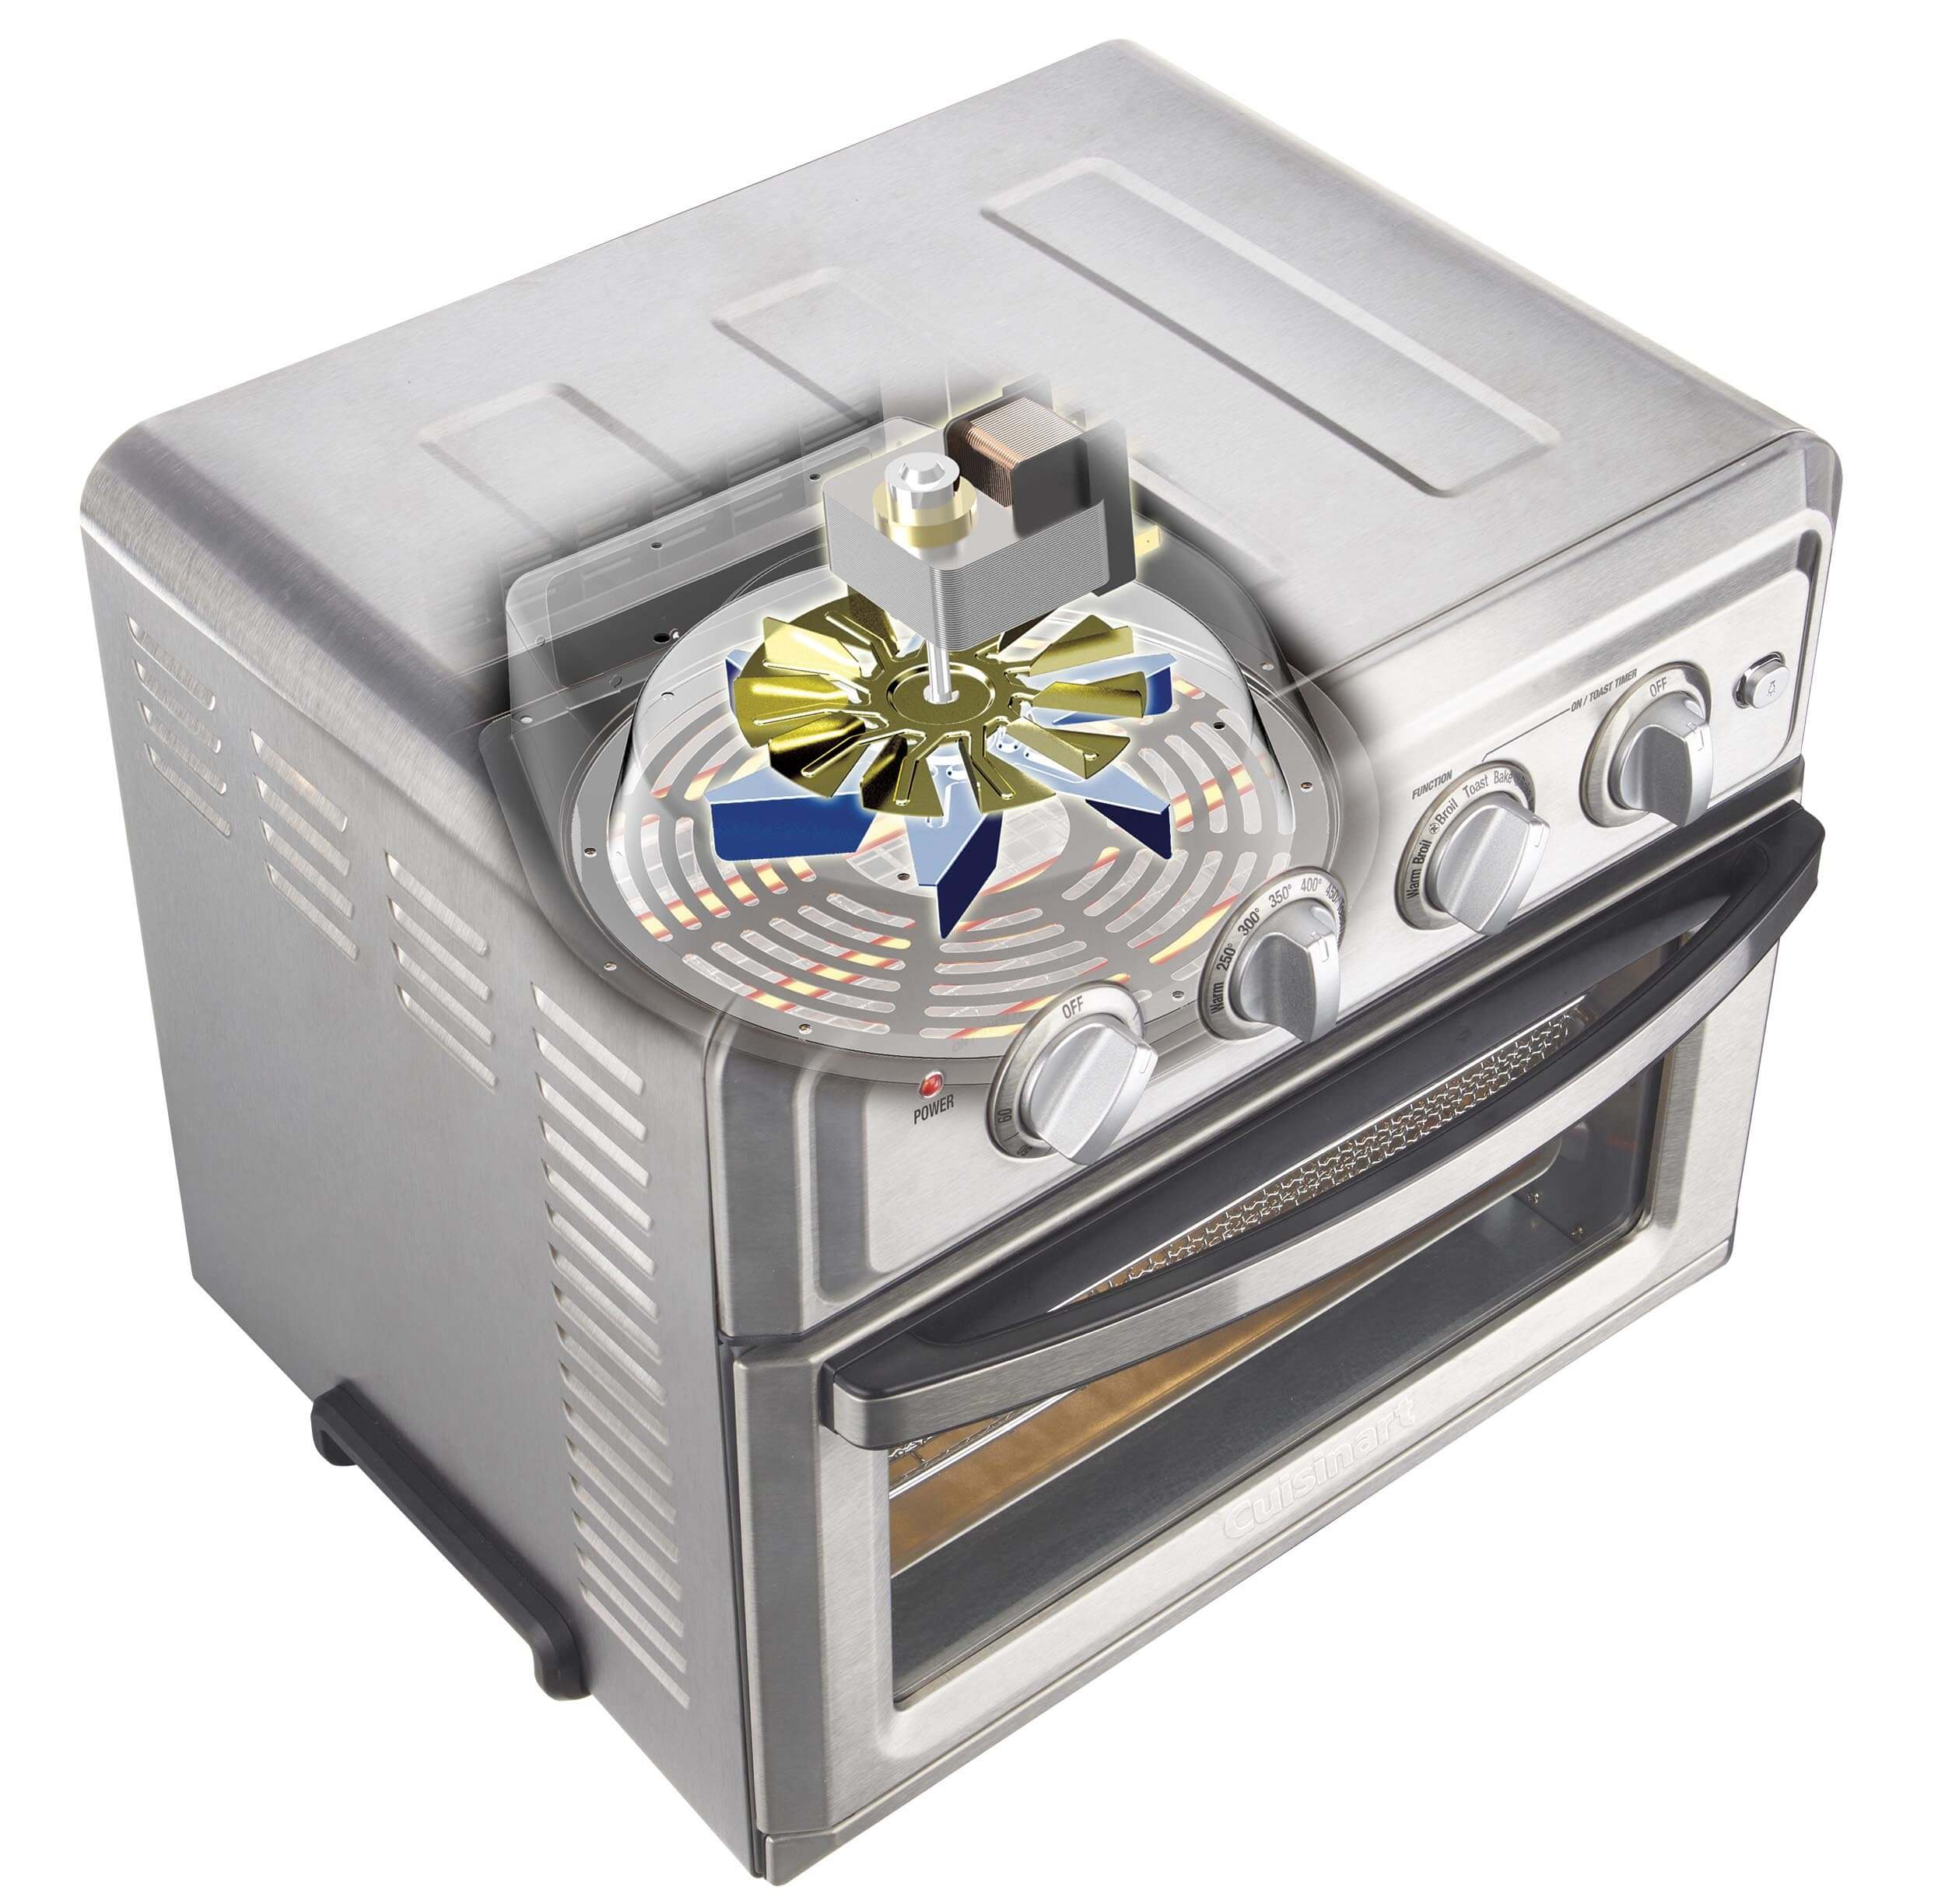 Cuisinart TOA-60 Convection Toaster Oven Airfryer, cuisinart air fryer, cusinart air fryer toaster oven, toaster cusinart, Best commercial air fryer, best air fryer